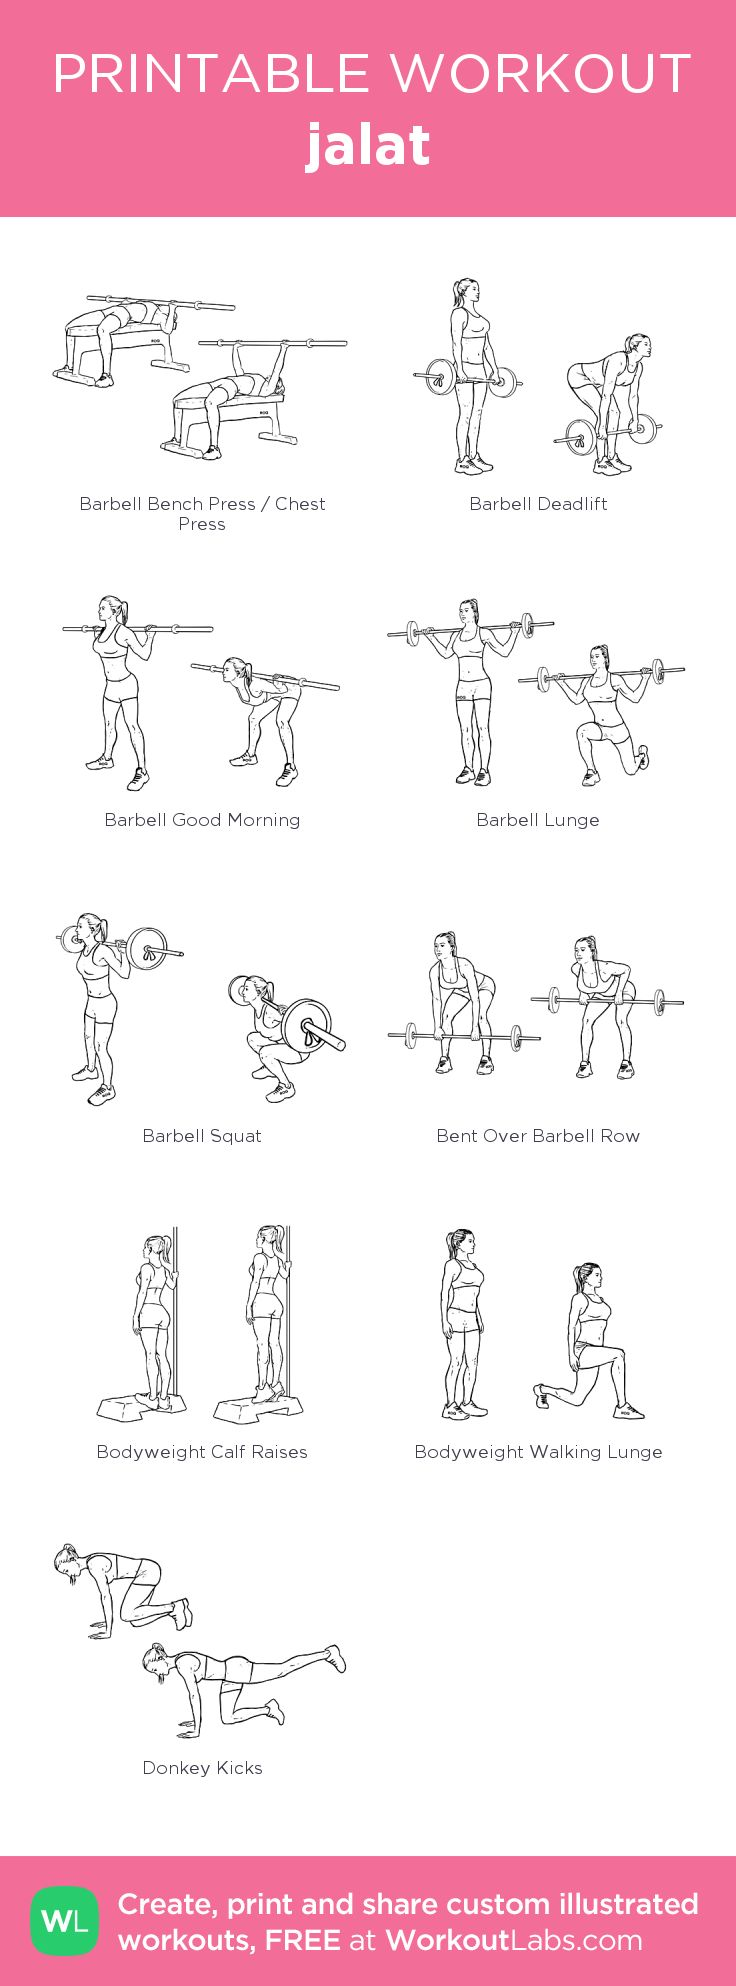 jalat:my visual workout created at WorkoutLabs.com • Click through to customize and download as a FREE PDF! #customworkout